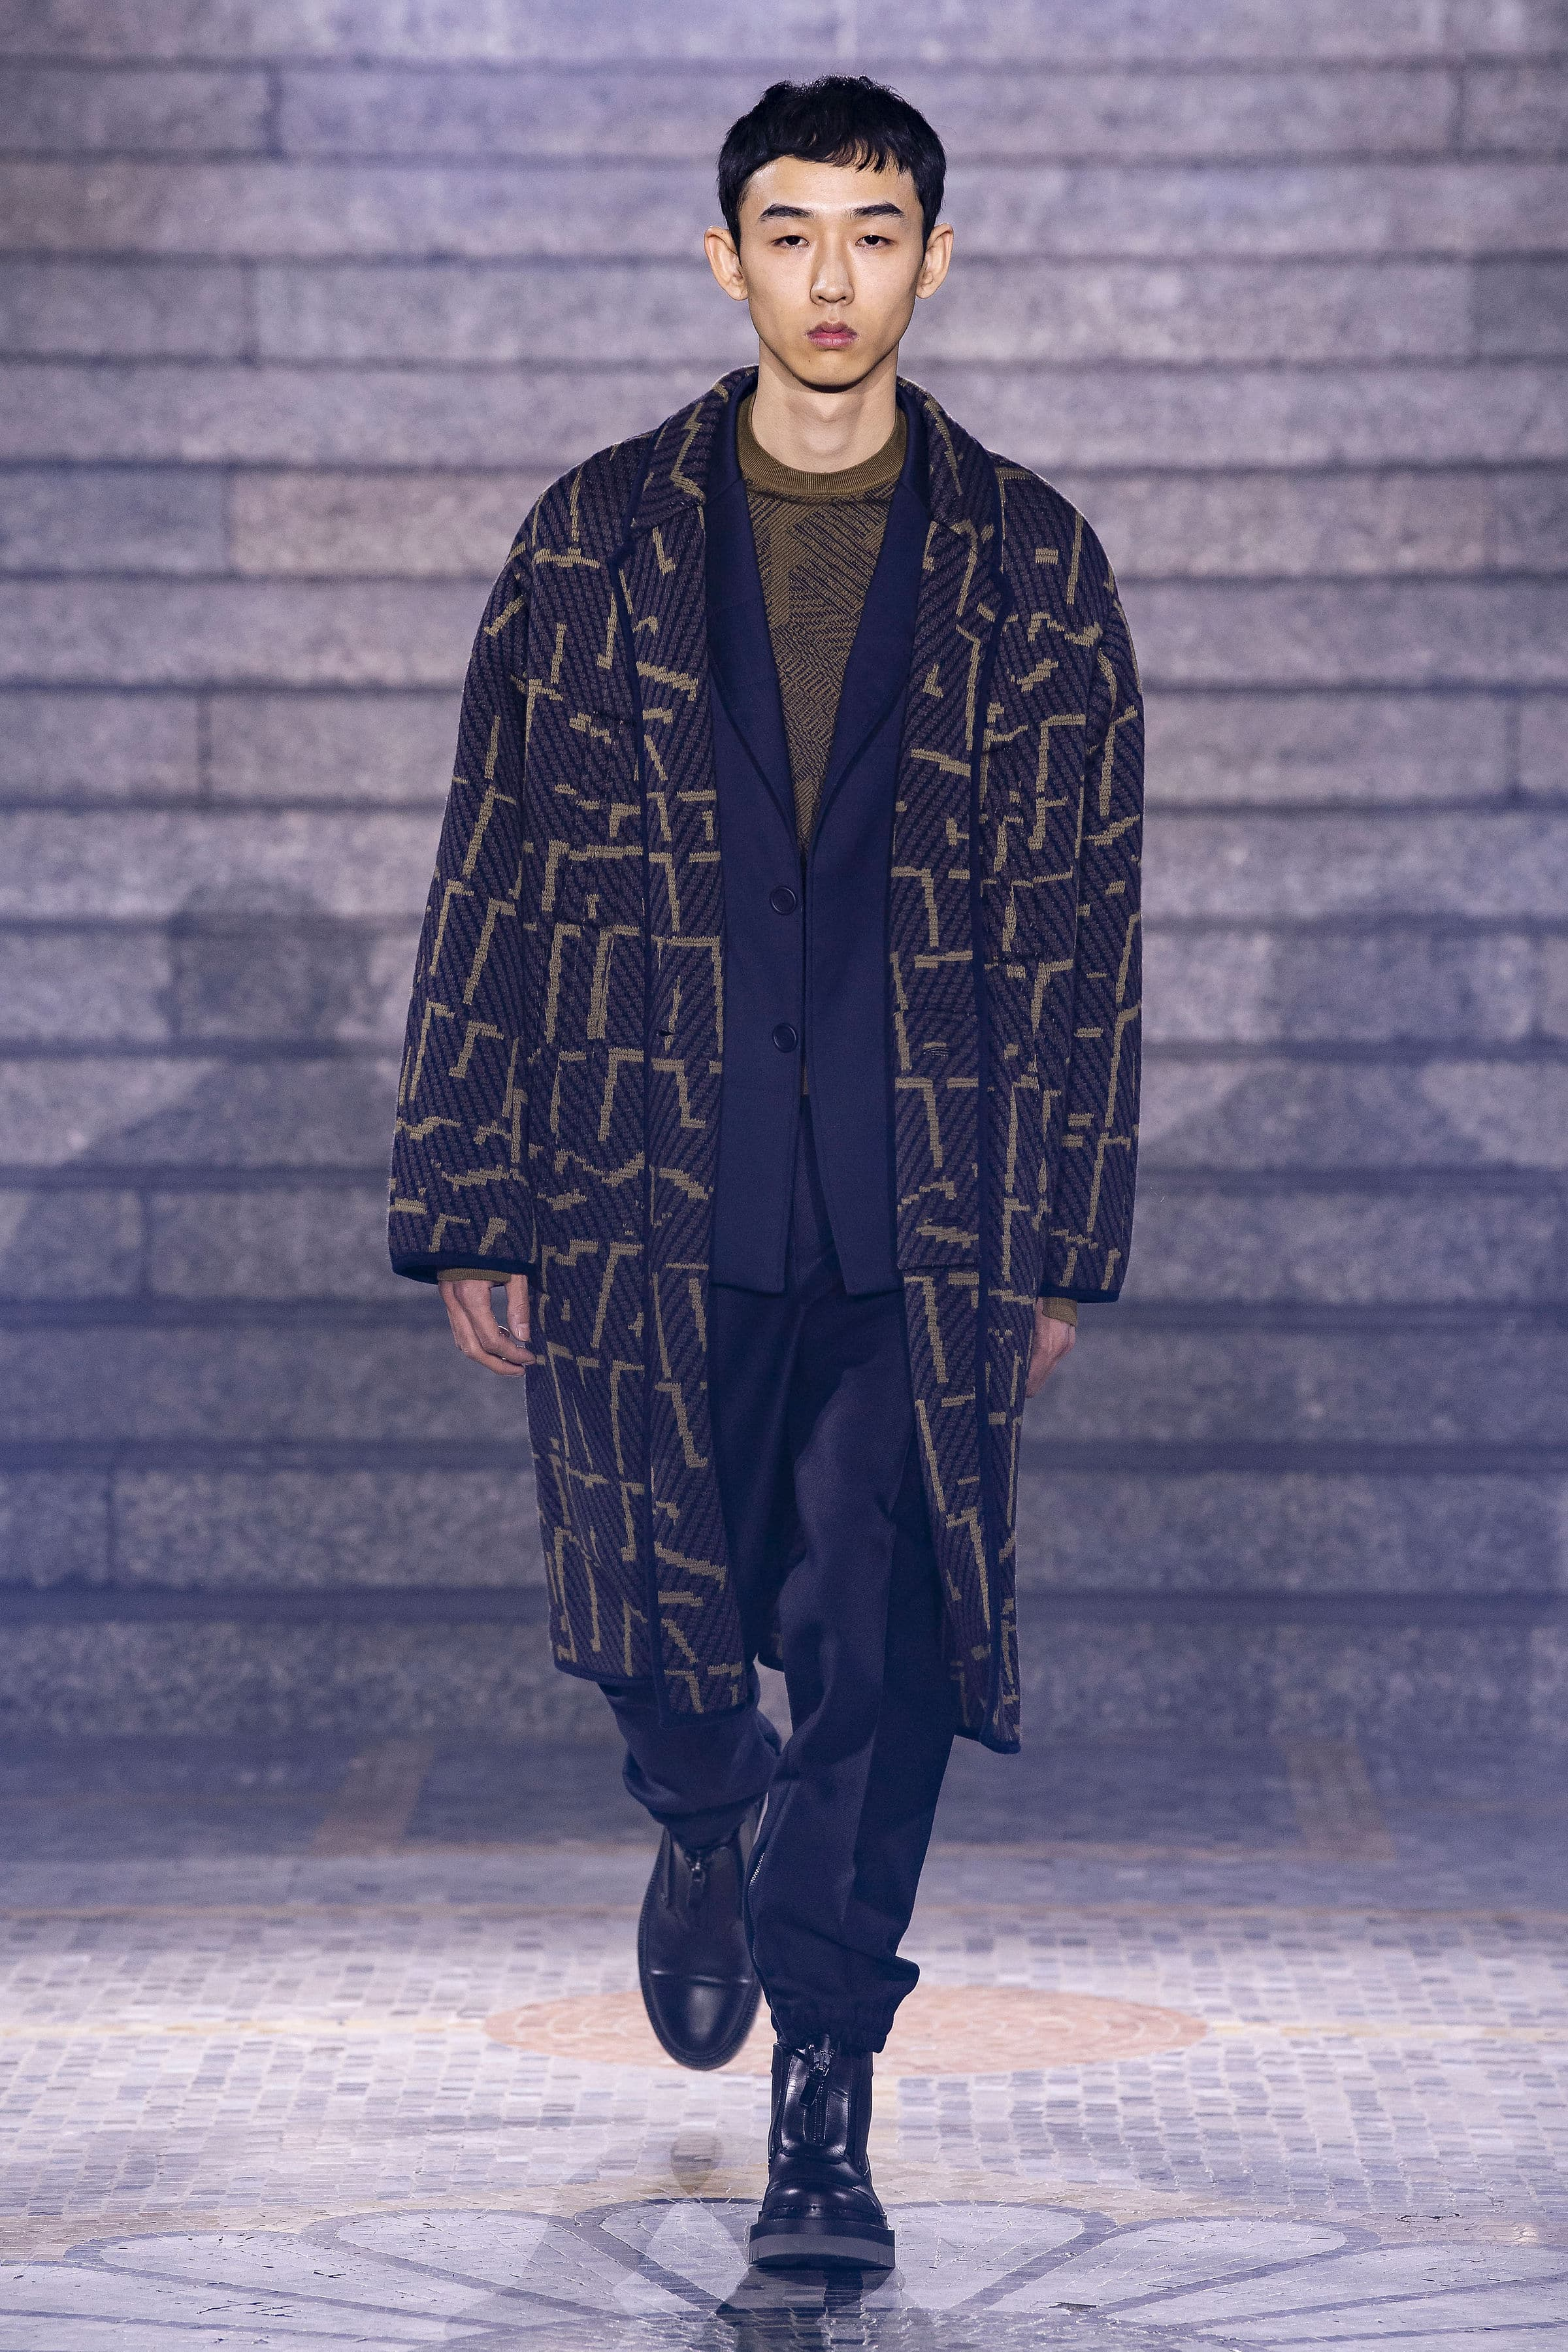 Contrasting mustard and purple printed throw-over jacket layered with satin/velvet maroon suit and mustard tee.